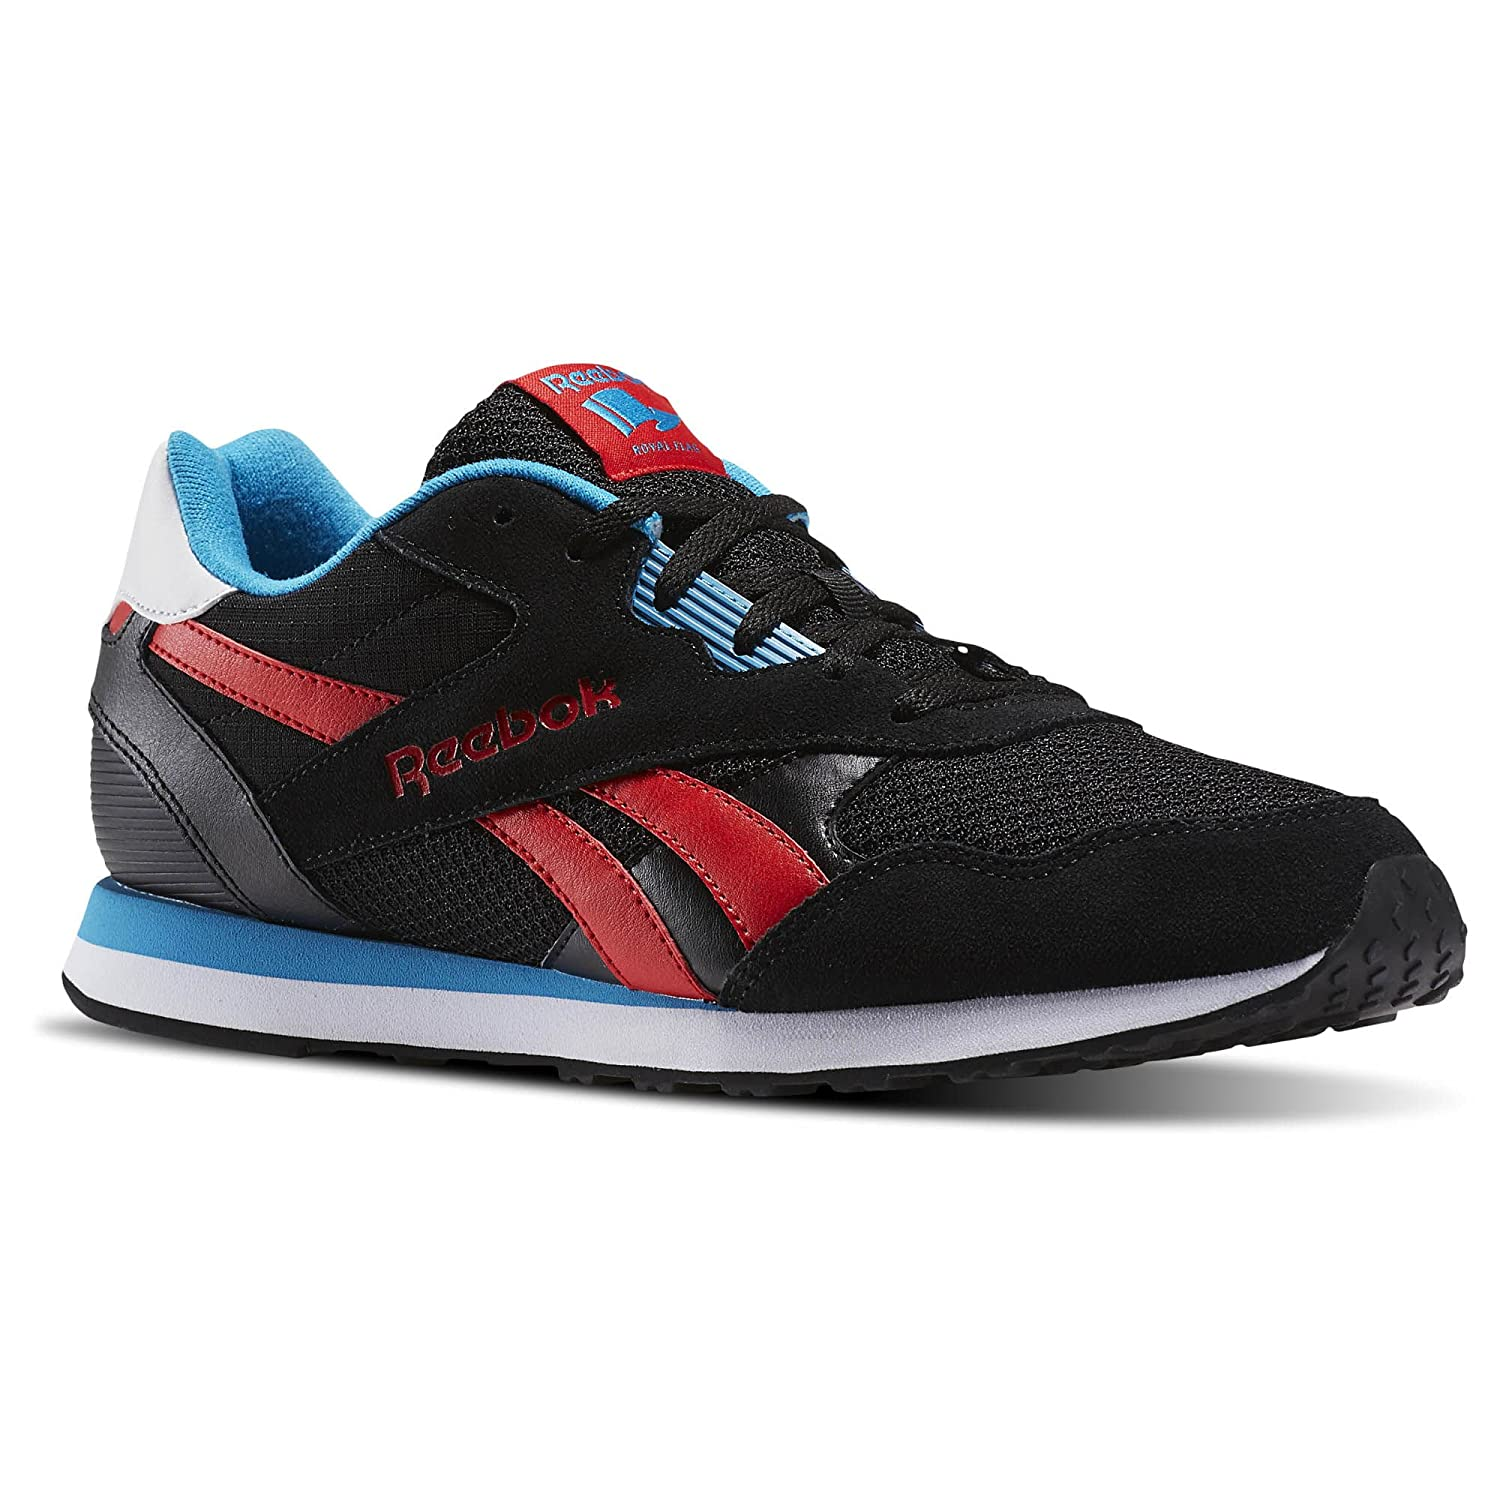 Reebok Royal Tempo Running Men's Shoes B01MQYVZUT 7.5 D(M) US|Black/Red/Teal/White